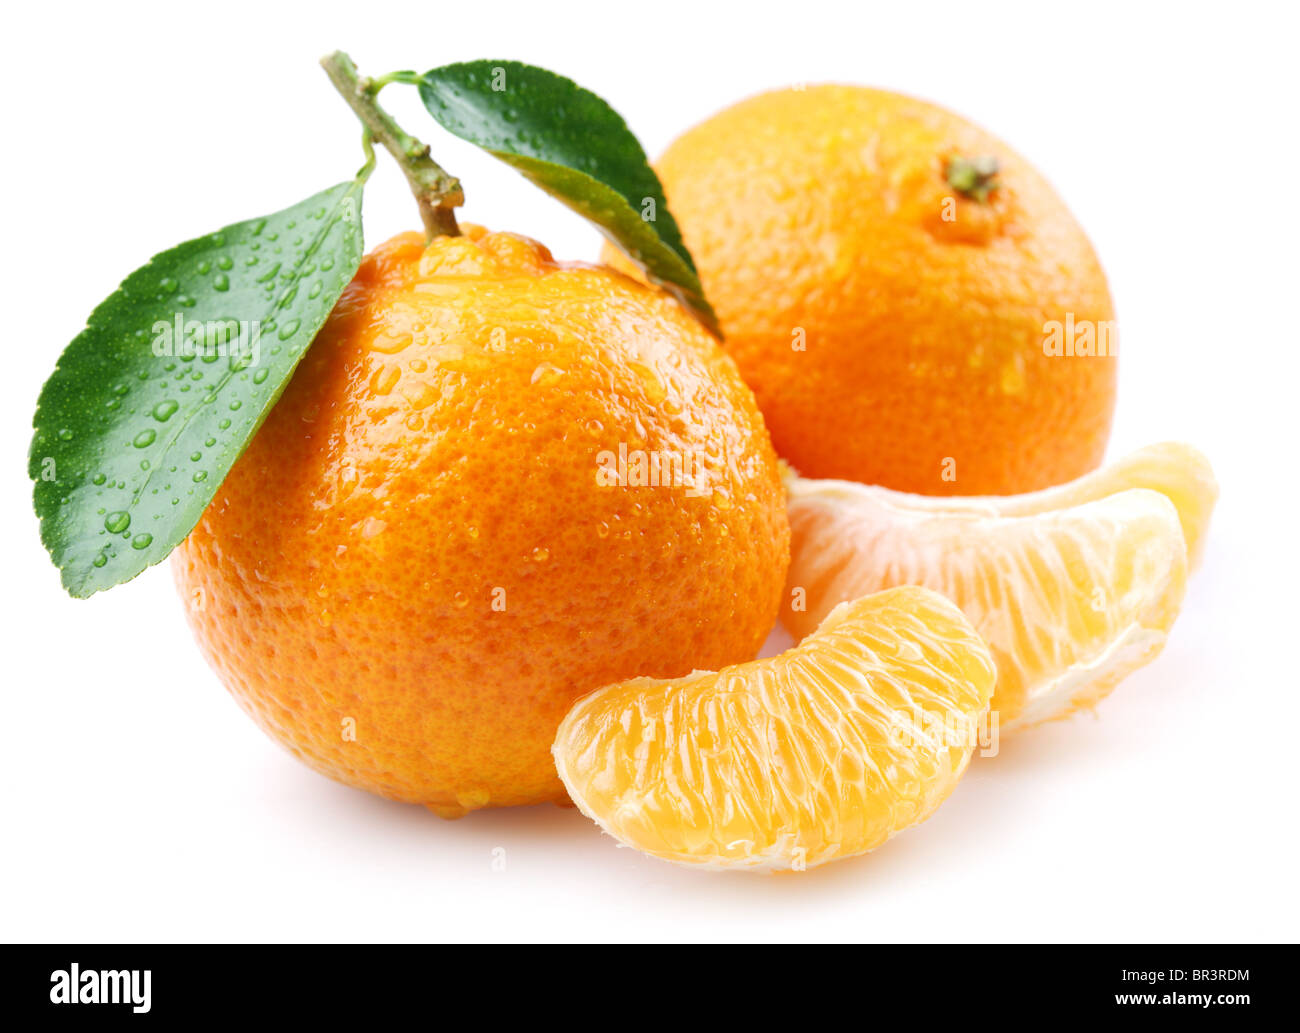 Ripe tangerines with leaves and slices on white background - Stock Image